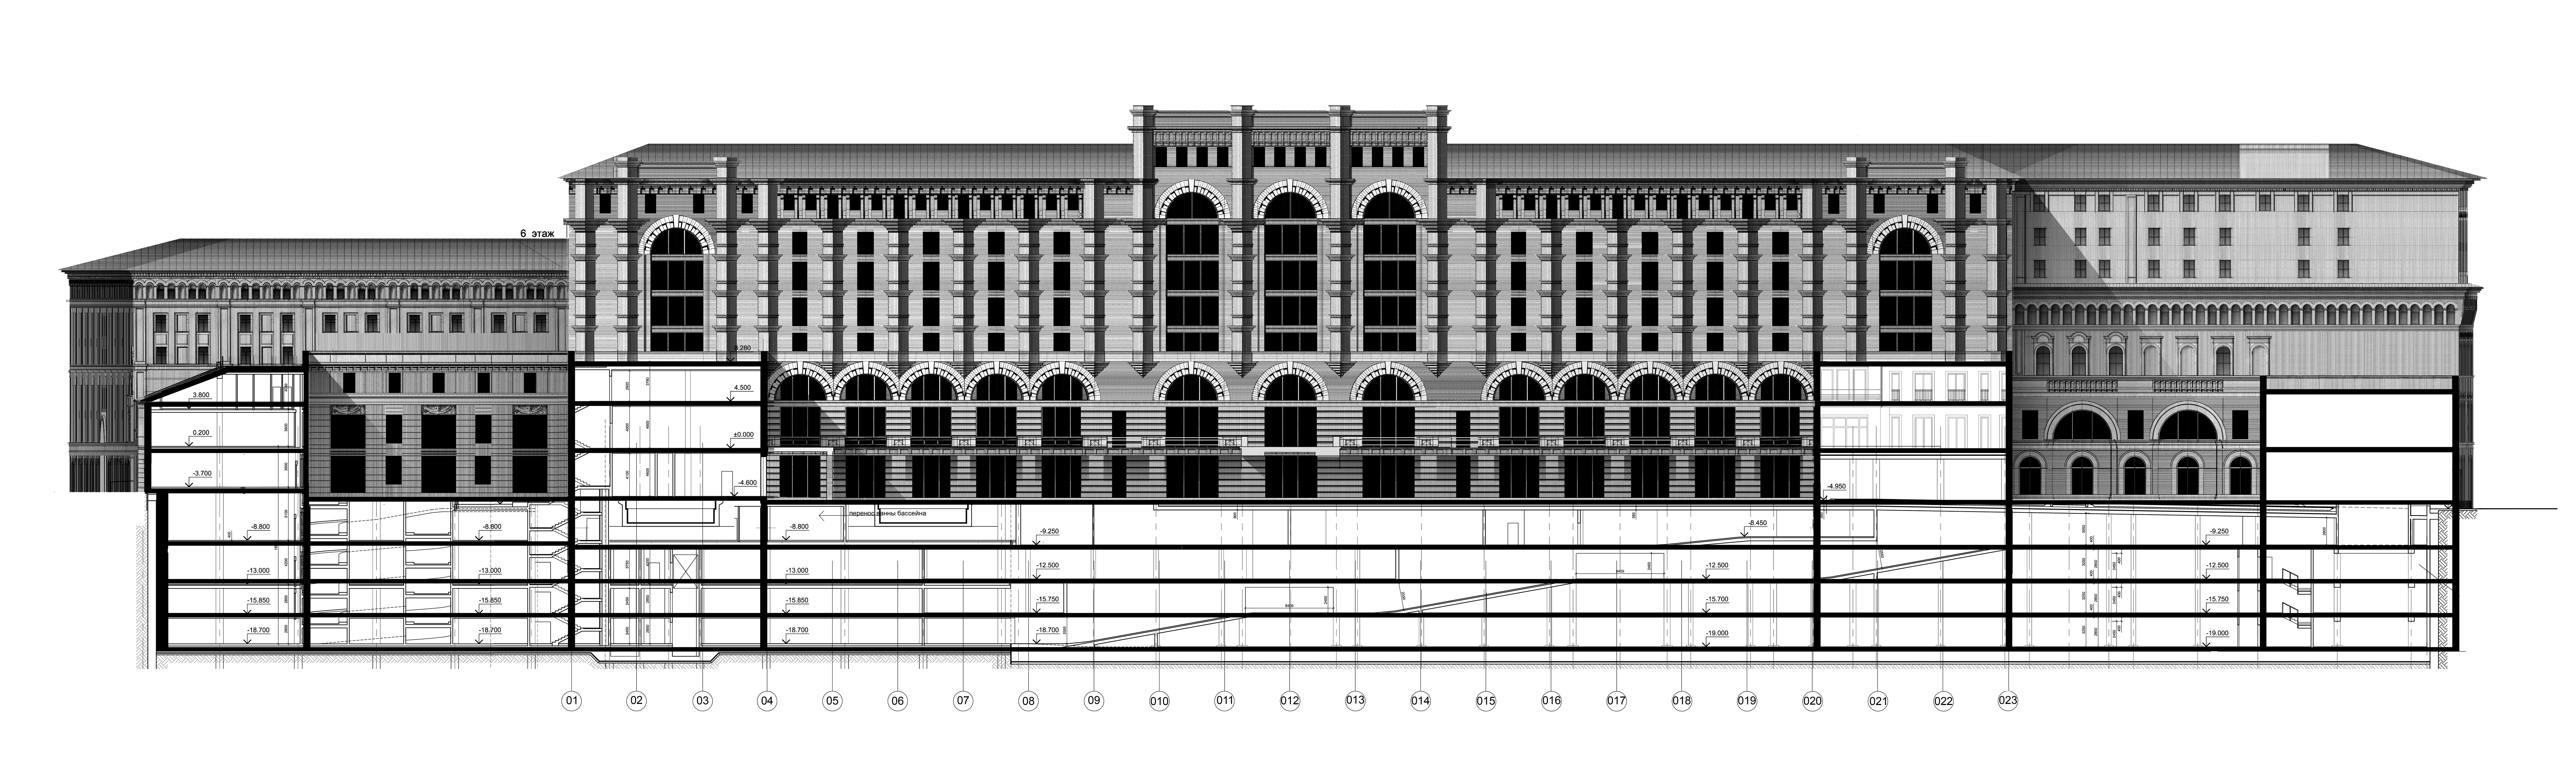 EASTERN FACADE AND CROSS SECTION